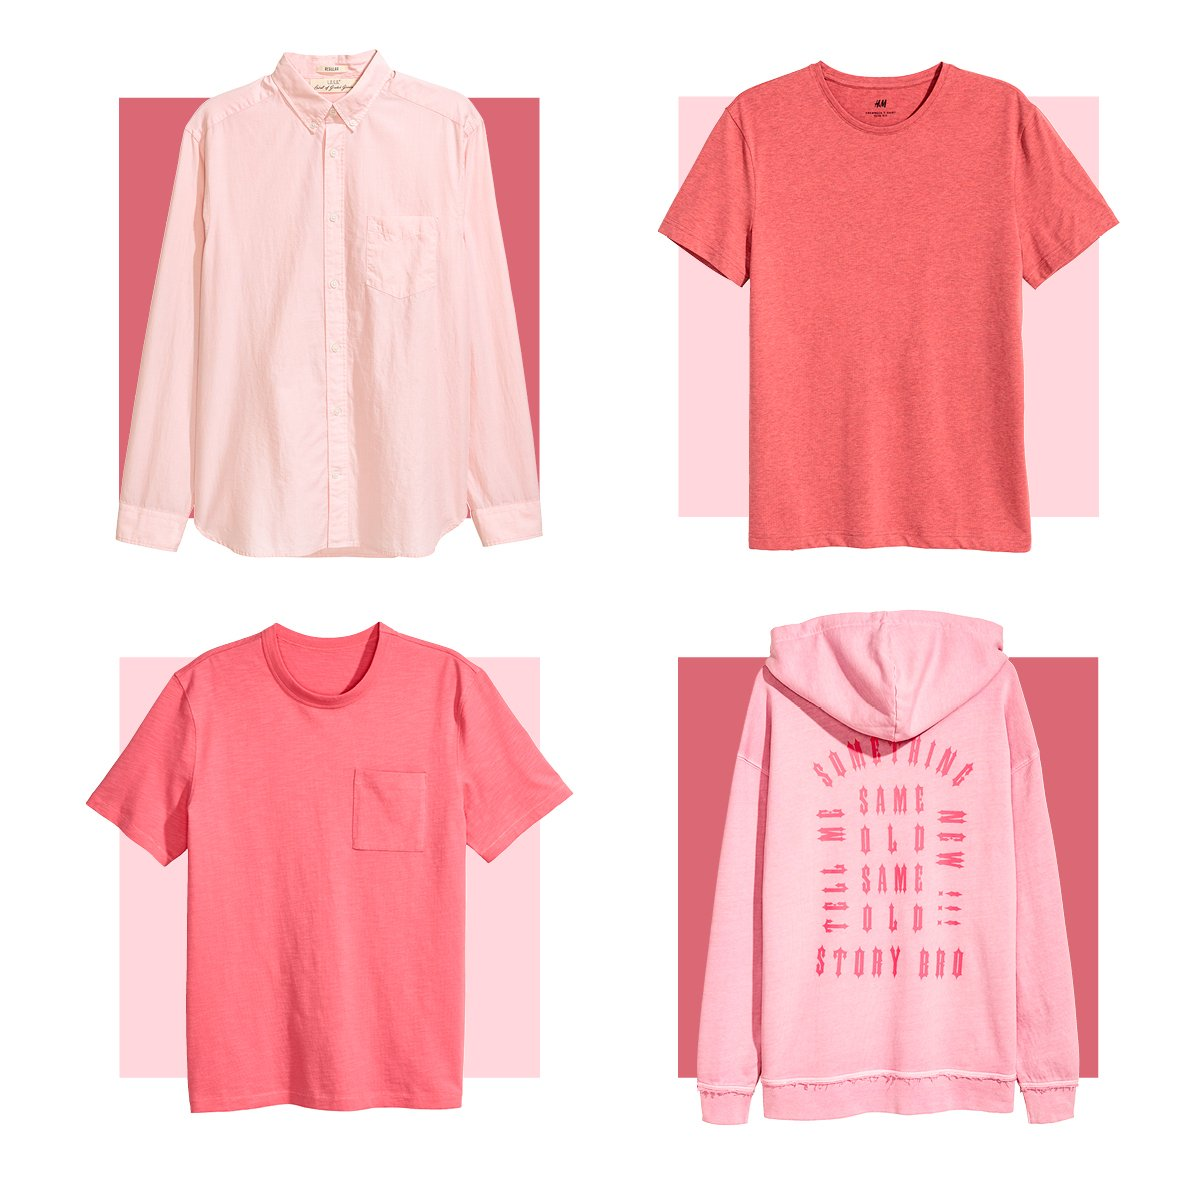 Pink isn&#39;t just for girls:  http:// hm.info/18pux  &nbsp;    #HM #NationalPinkDay<br>http://pic.twitter.com/By7dC4Oq7P